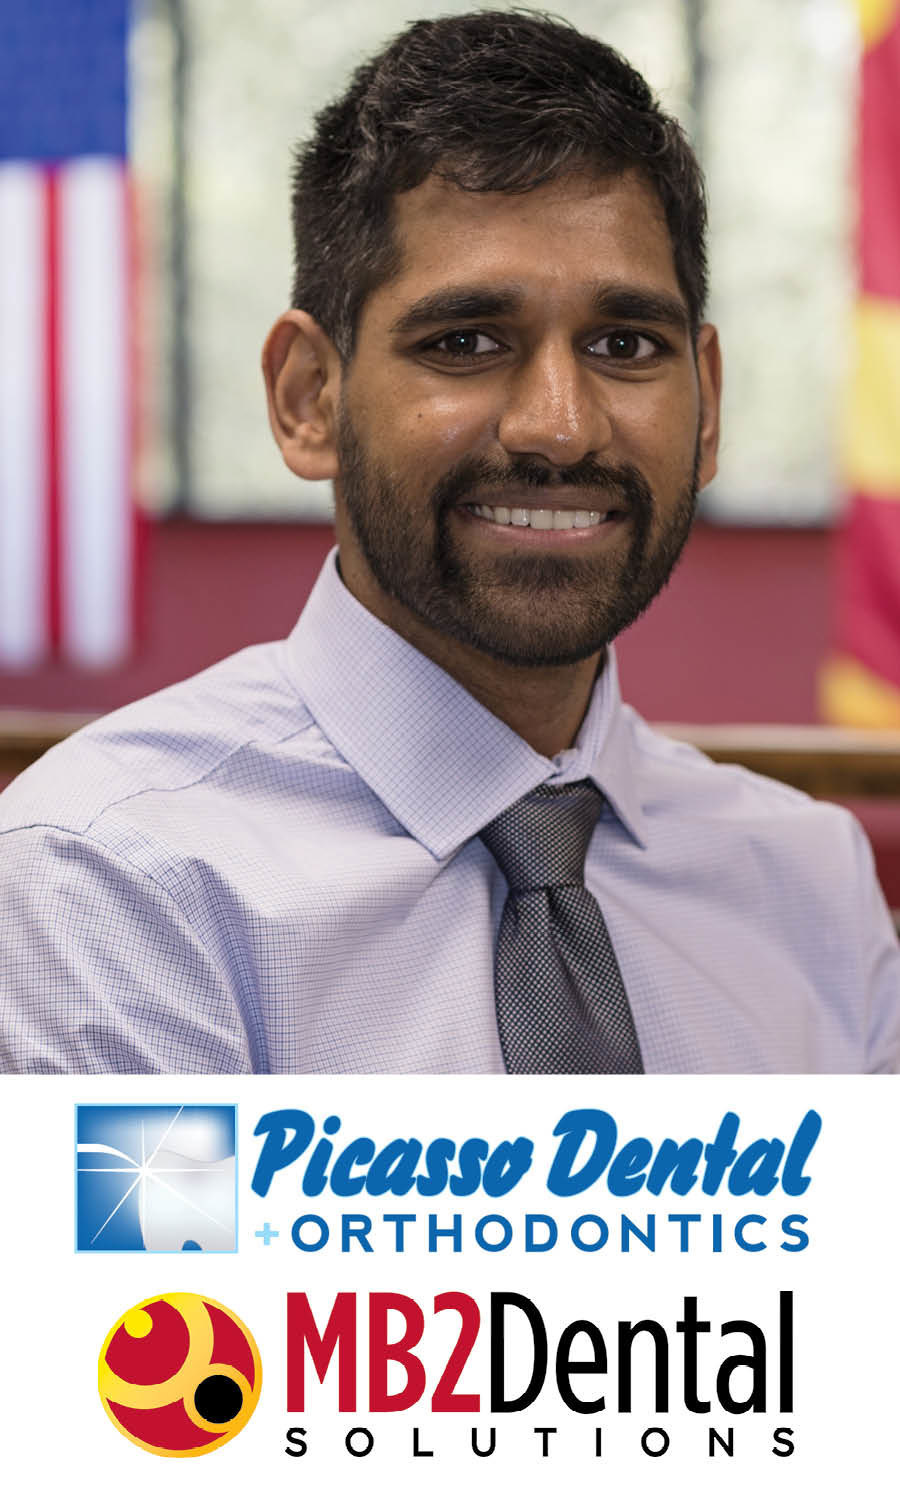 """""""Helping people through dental care is a big passion of mine,"""" said Dr. Rishank Korupolu, owner of the new Picasso Dental + Orthodontics in Seagoville."""